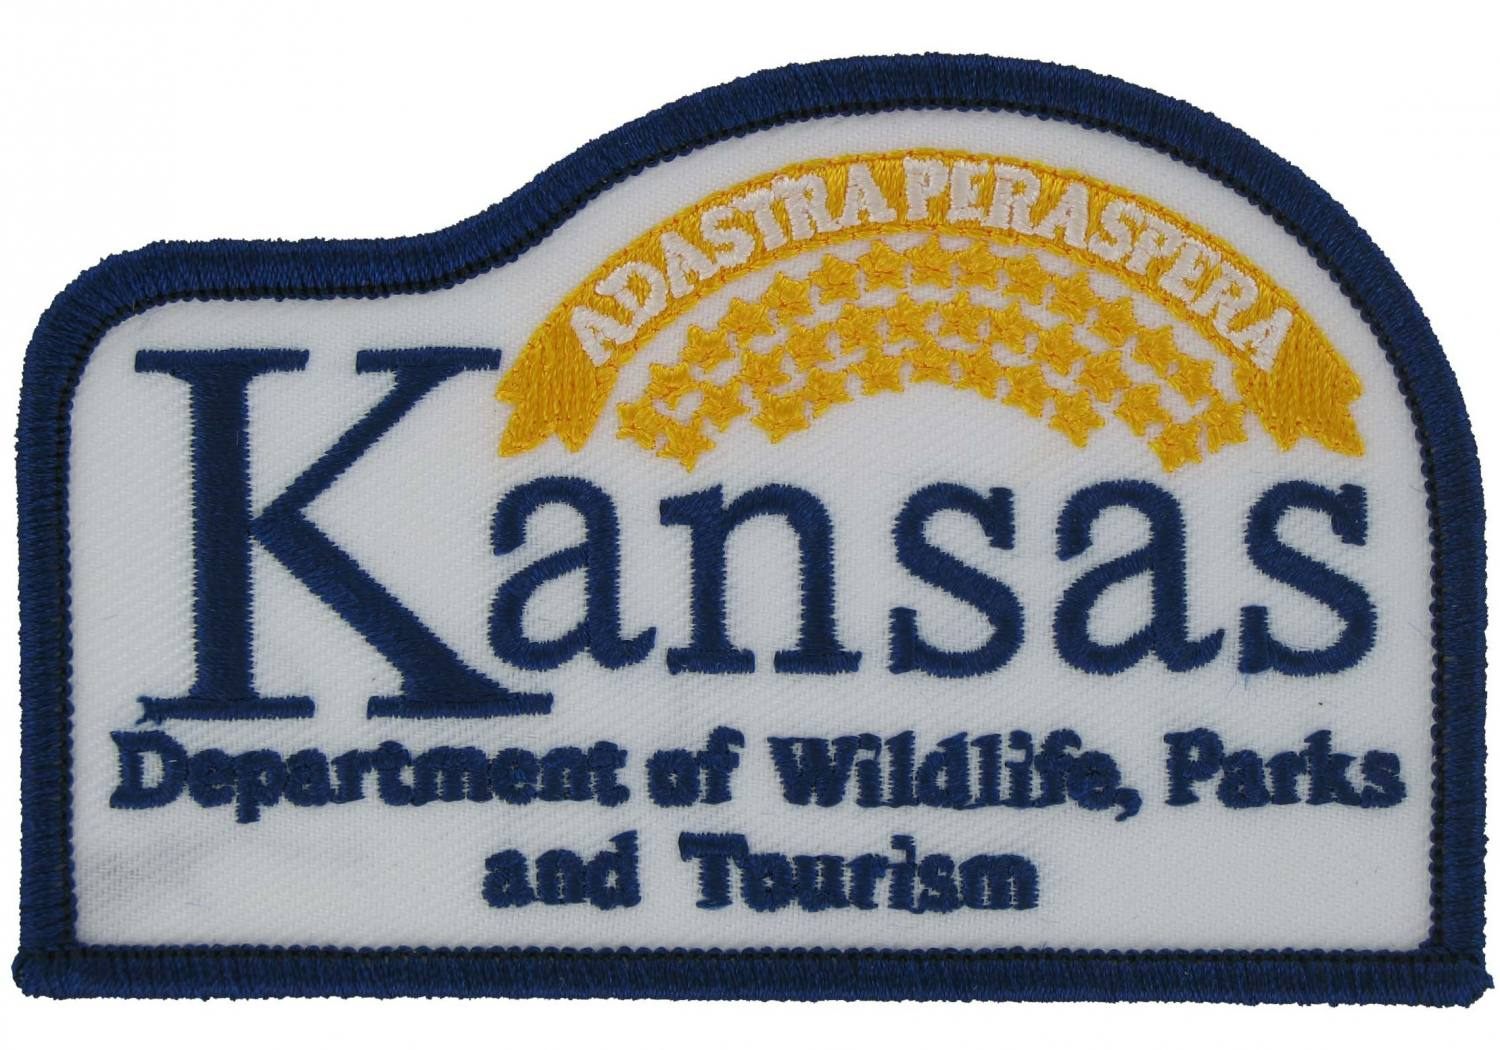 Department of Wildlife Patch